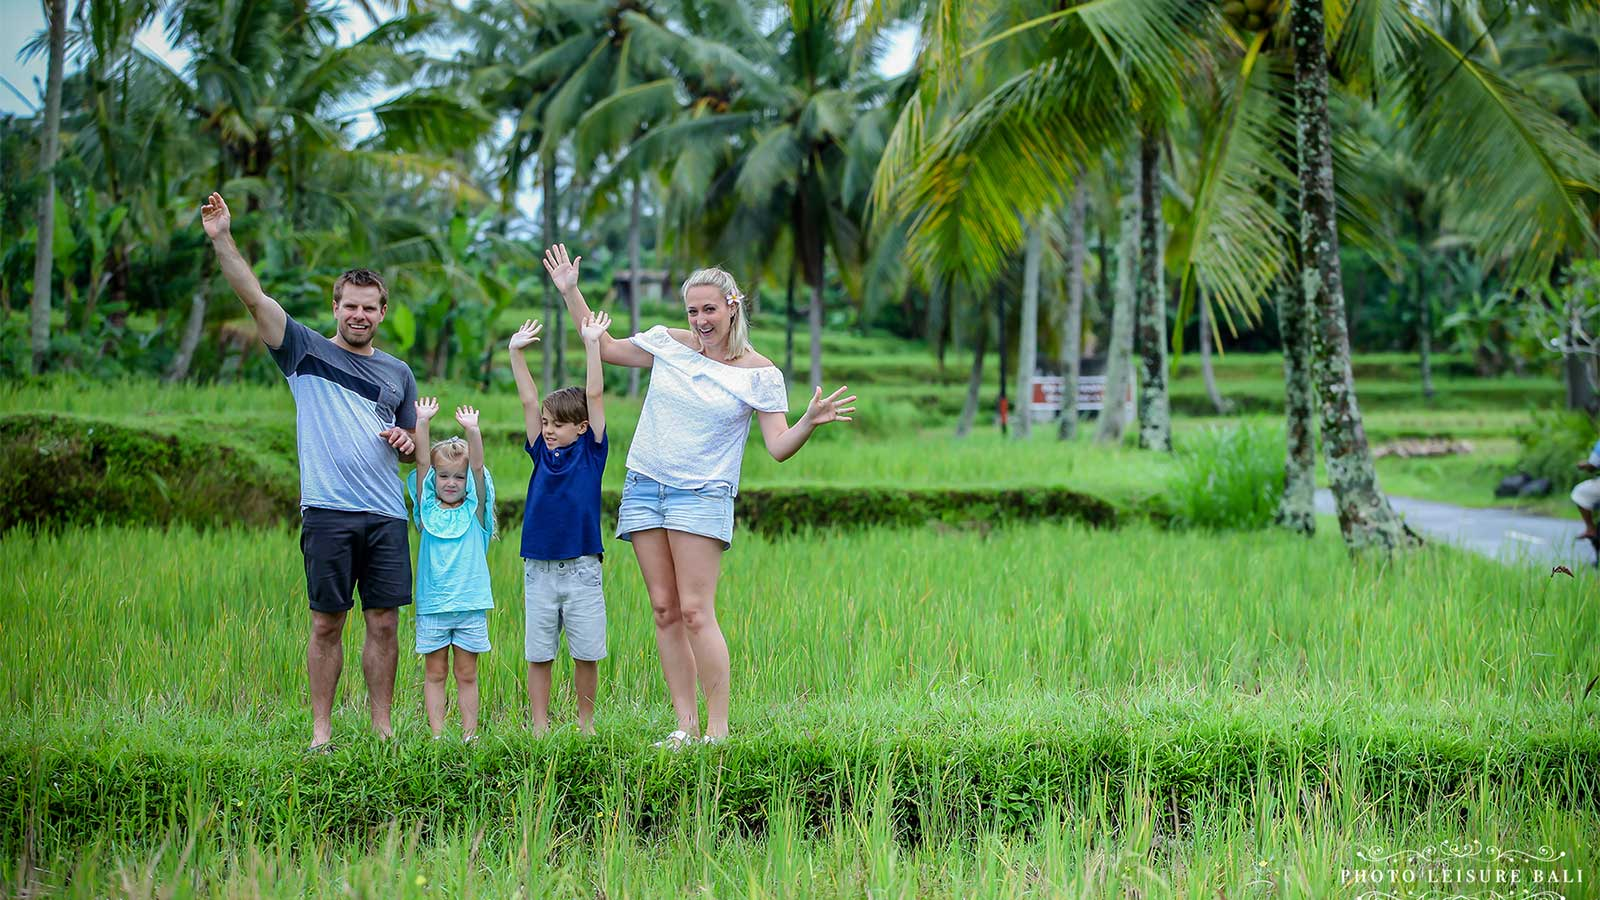 walk with family at field rice near dedary kriyamaha villa